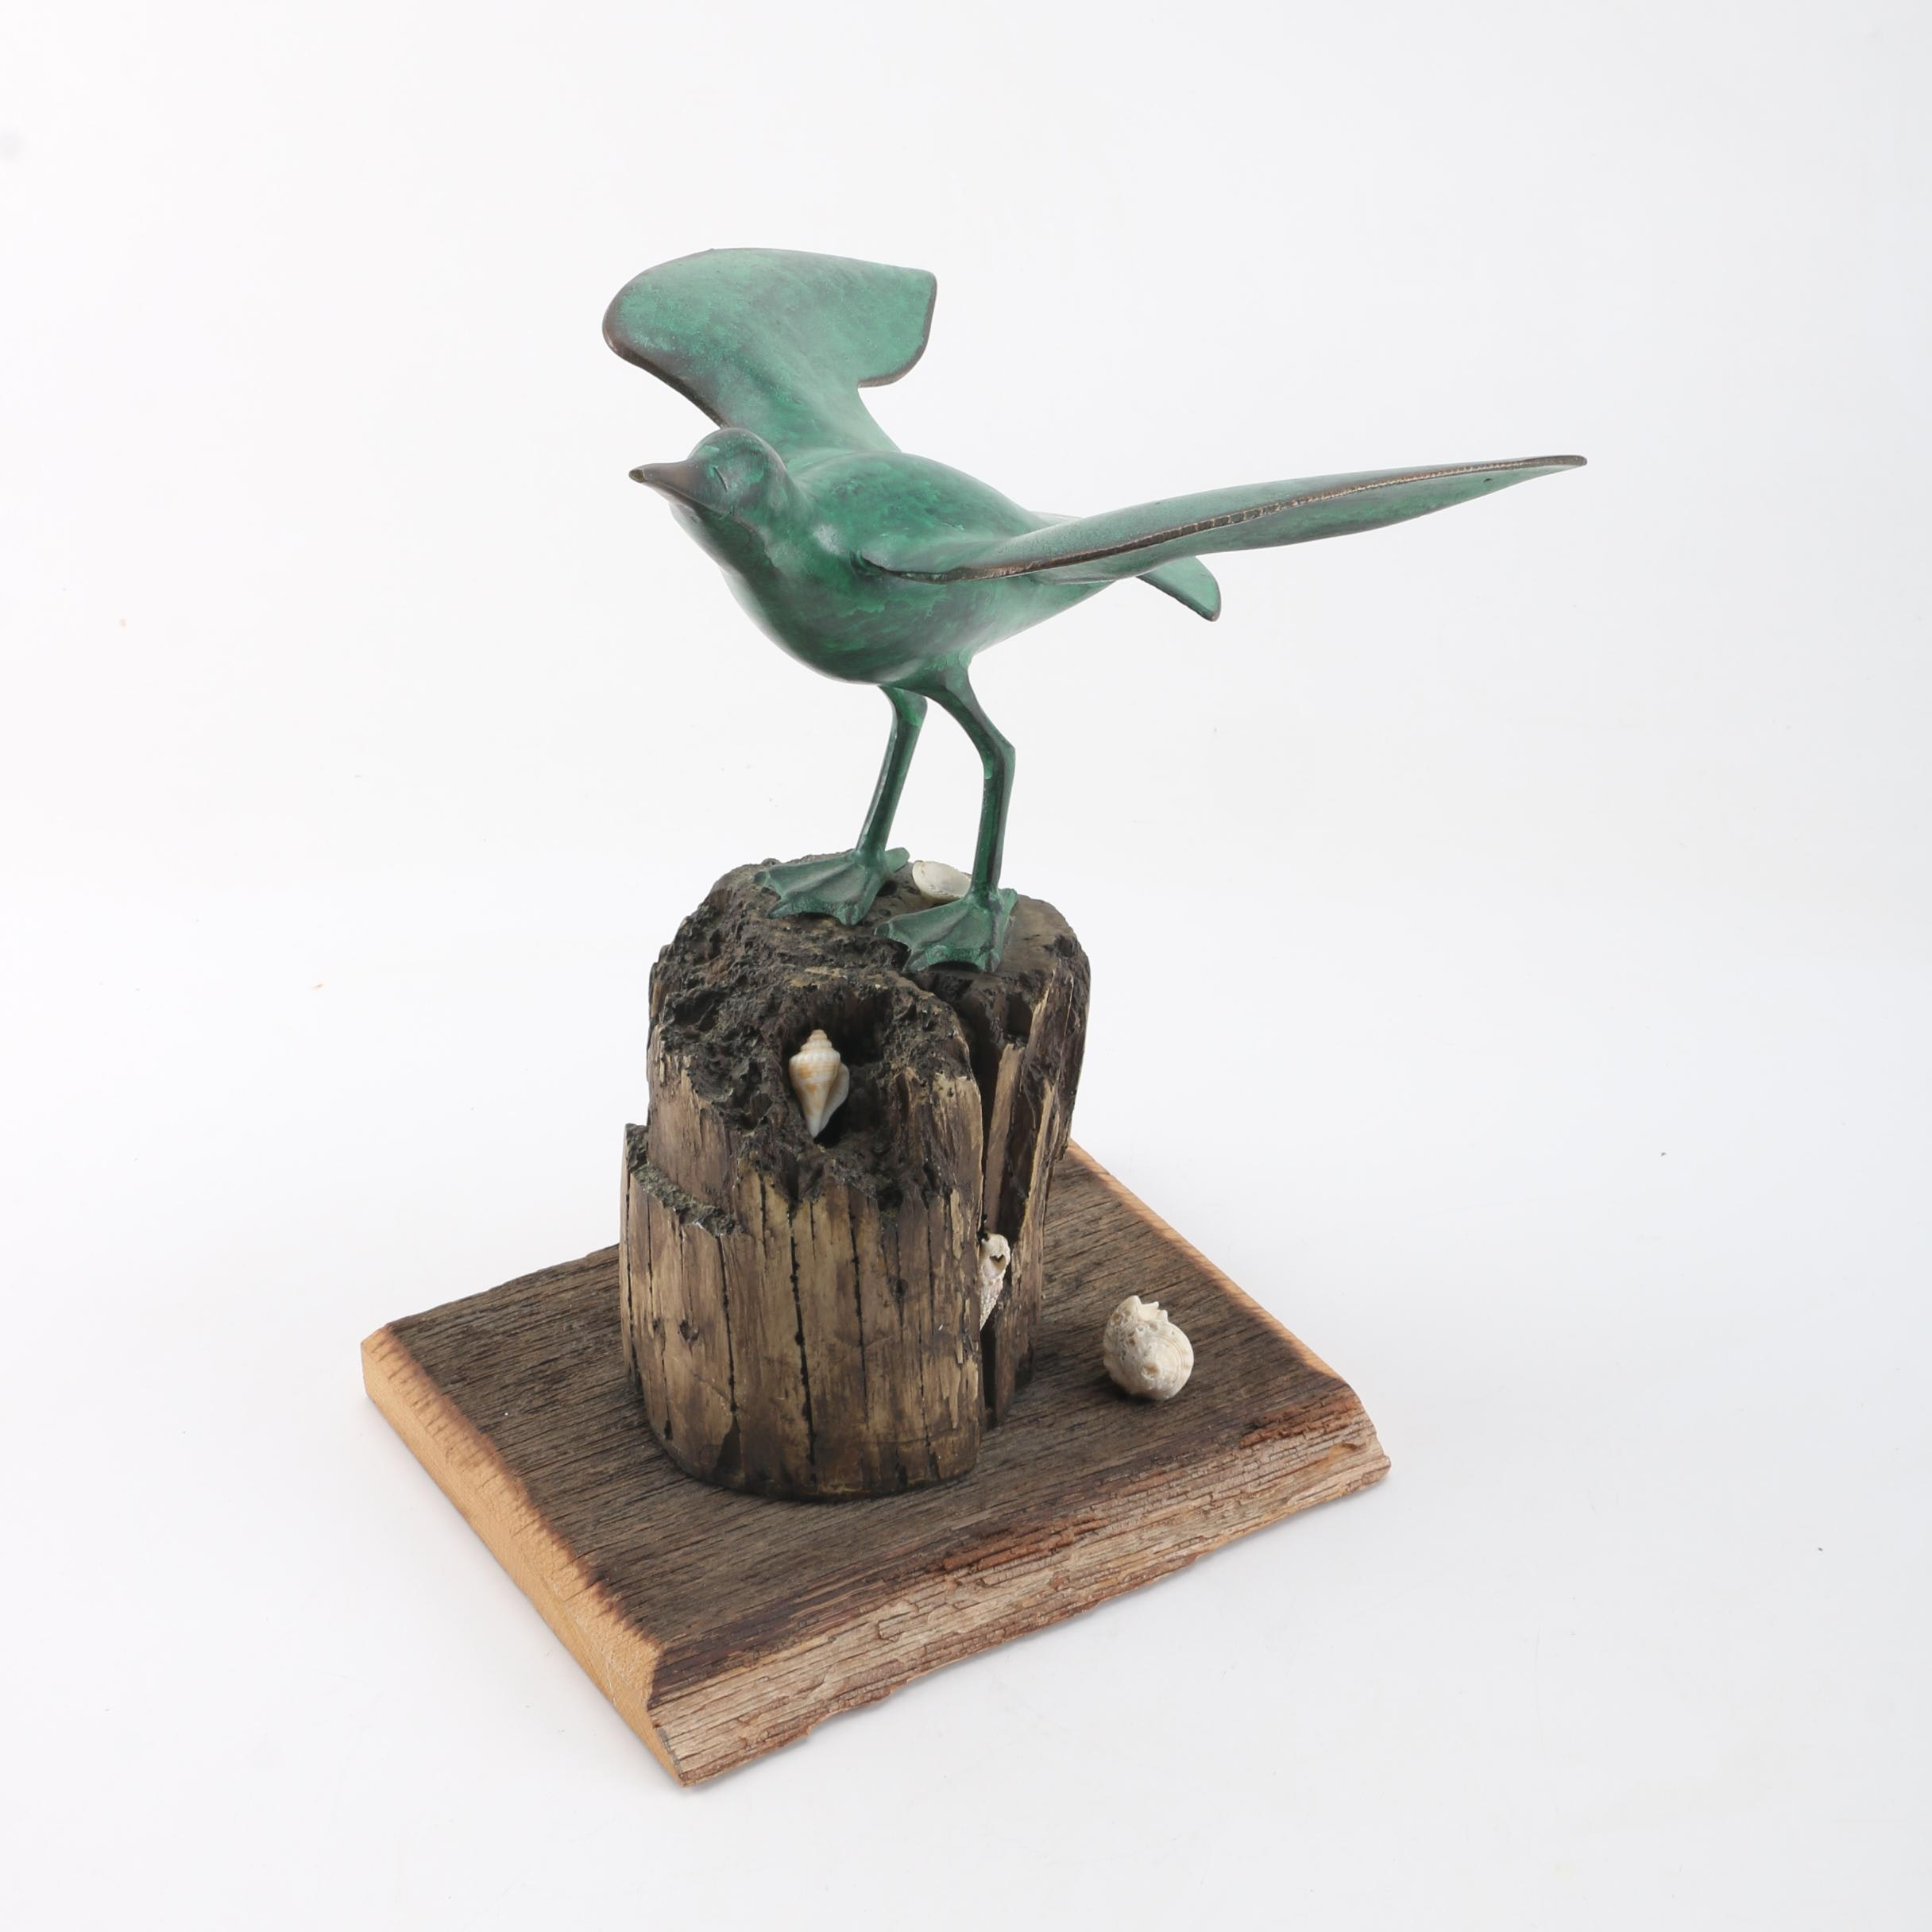 Cast Iron Bird Figurine with Wood Base